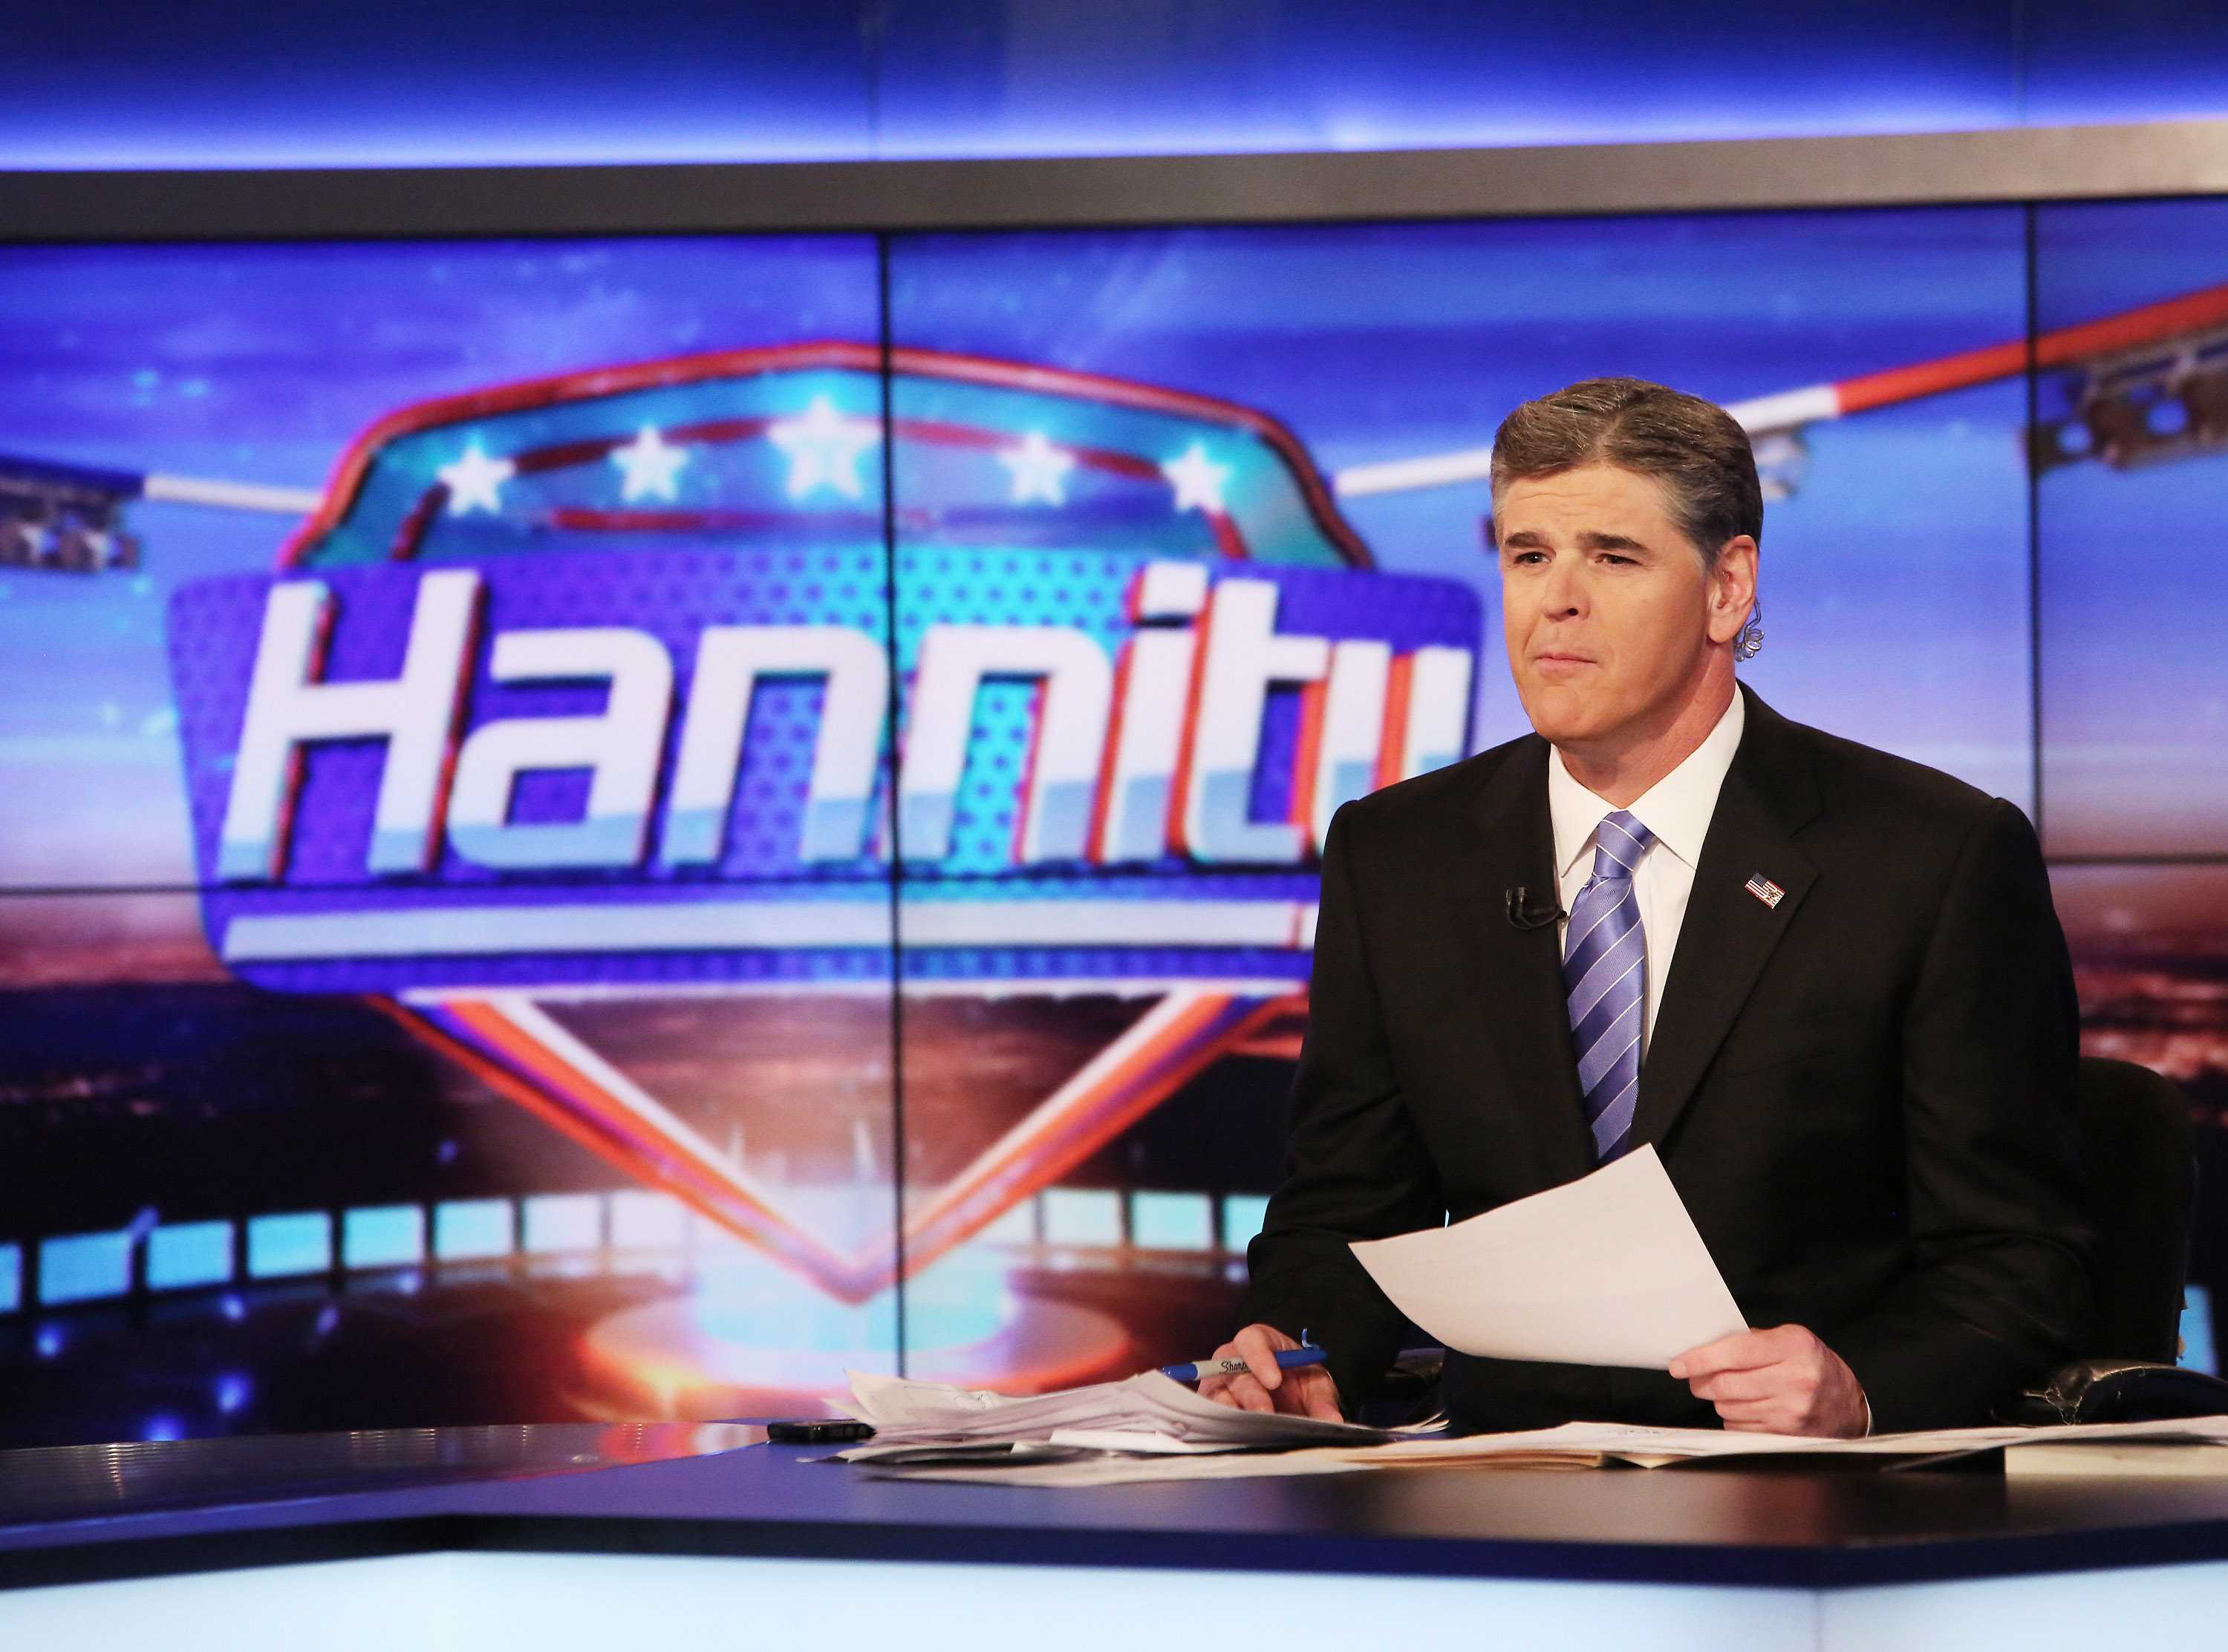 Sean Hannity says Trump's personal lawyer Michael Cohen 'never represented' him in any matter